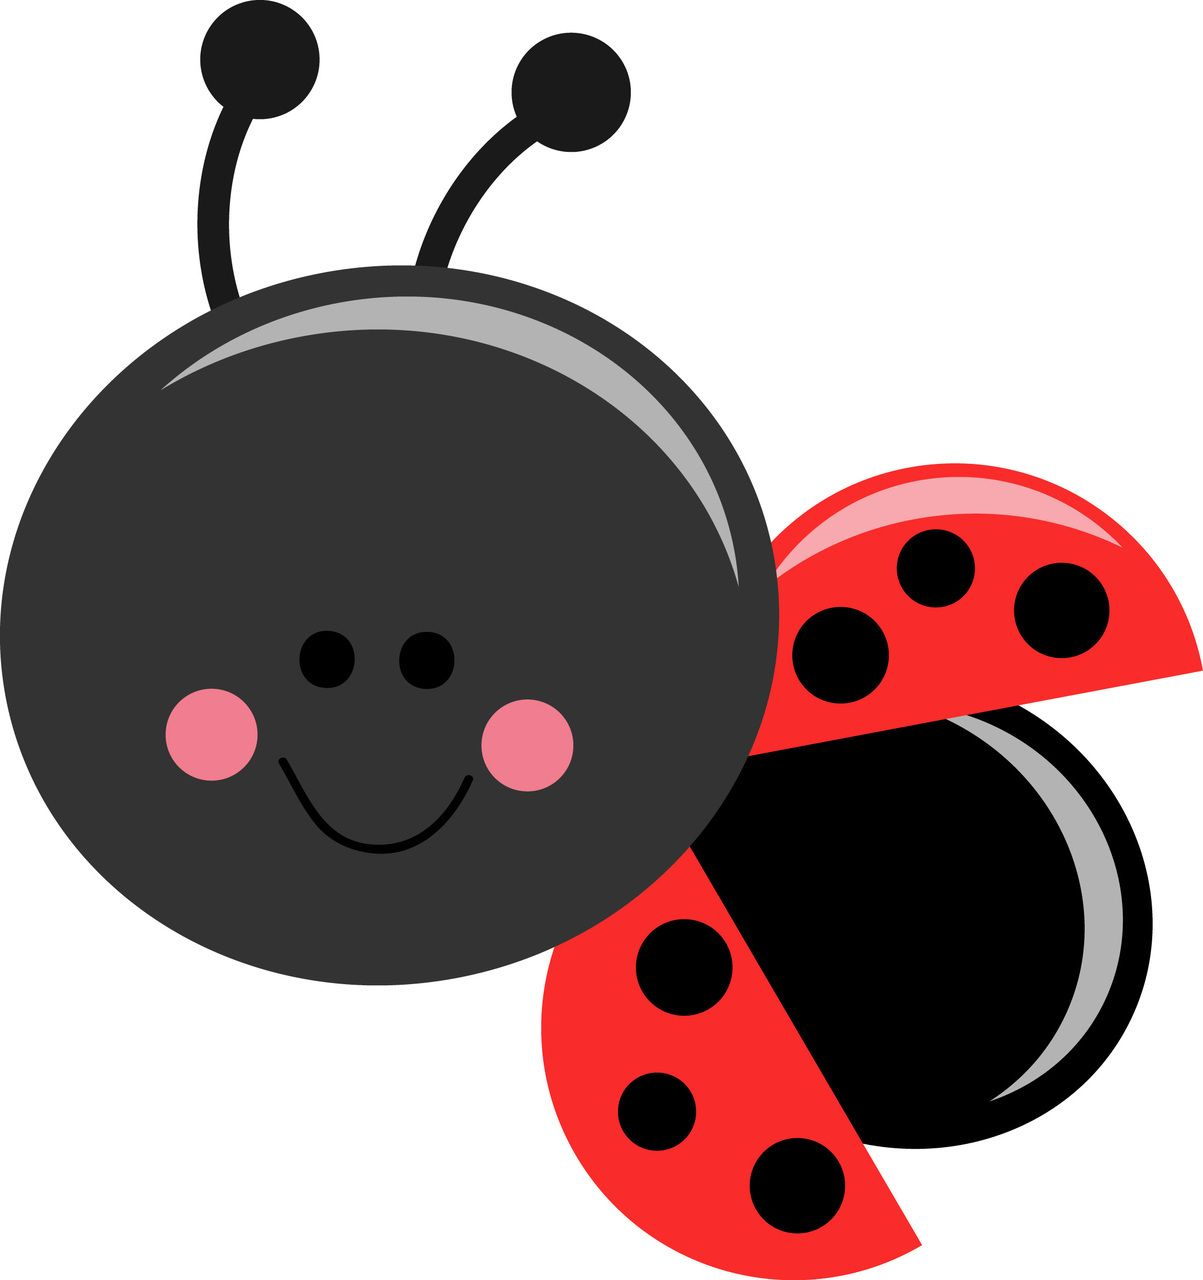 Ladybug clipart silhouette. Graphics cute images free